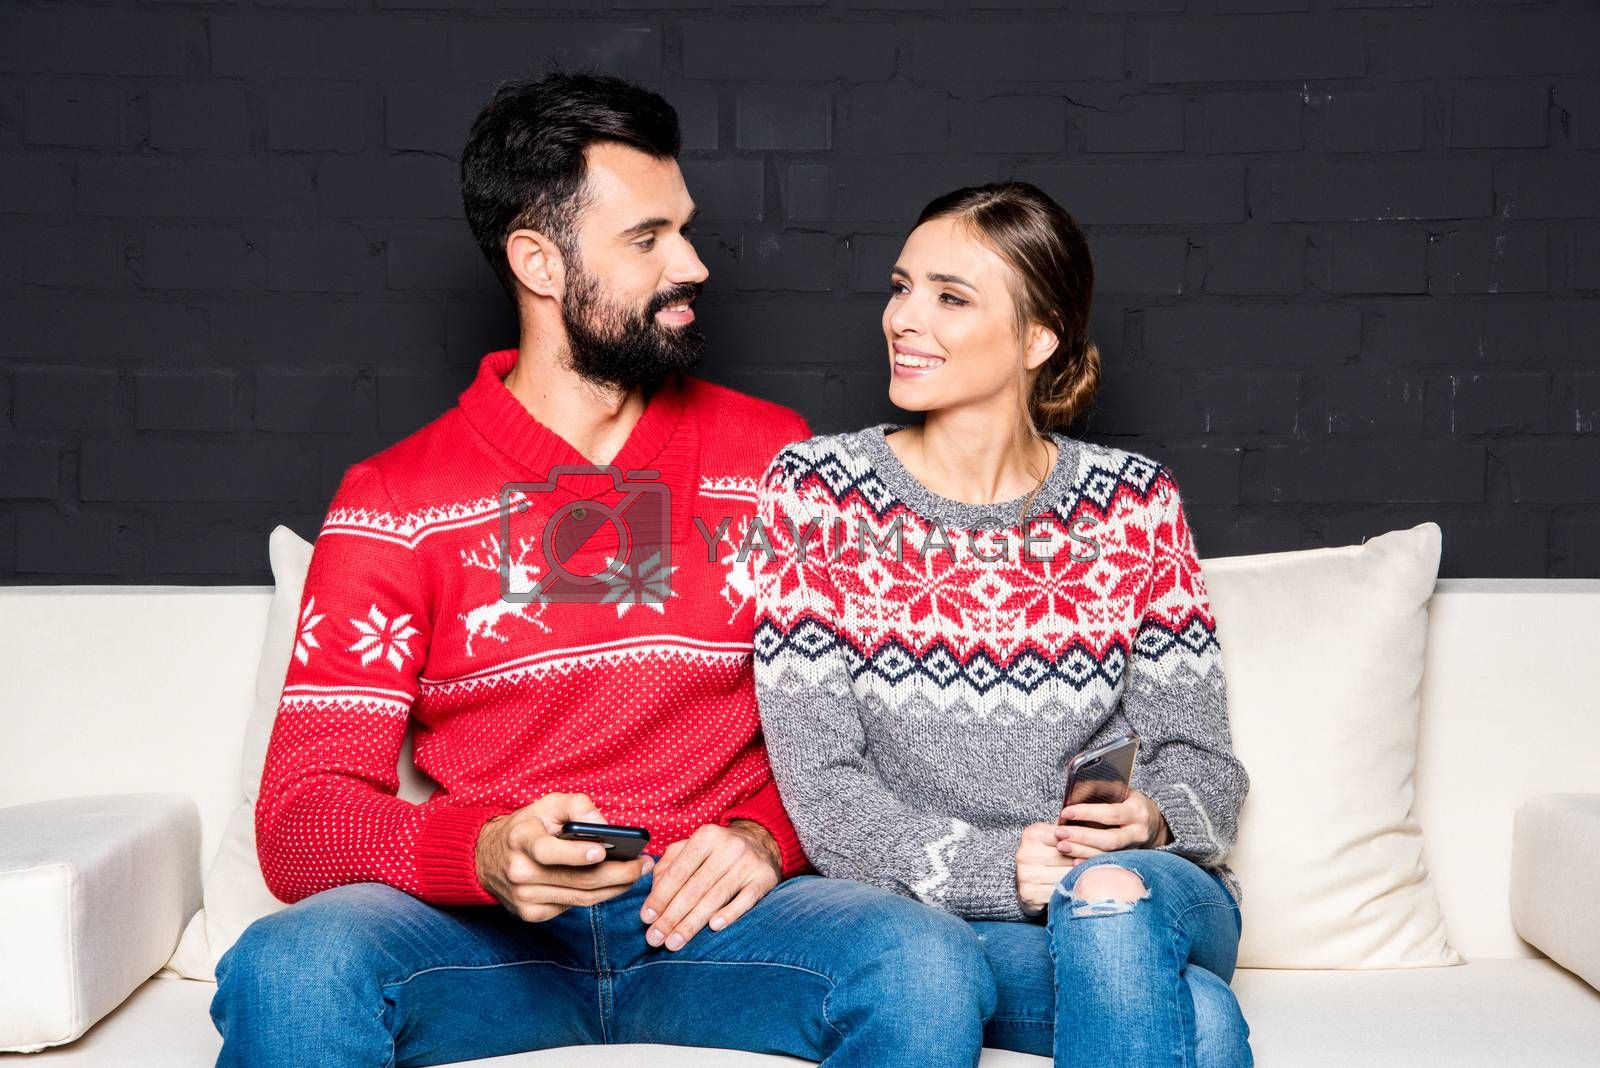 Loving couple with smartphones looking at each other while sitting on white couch